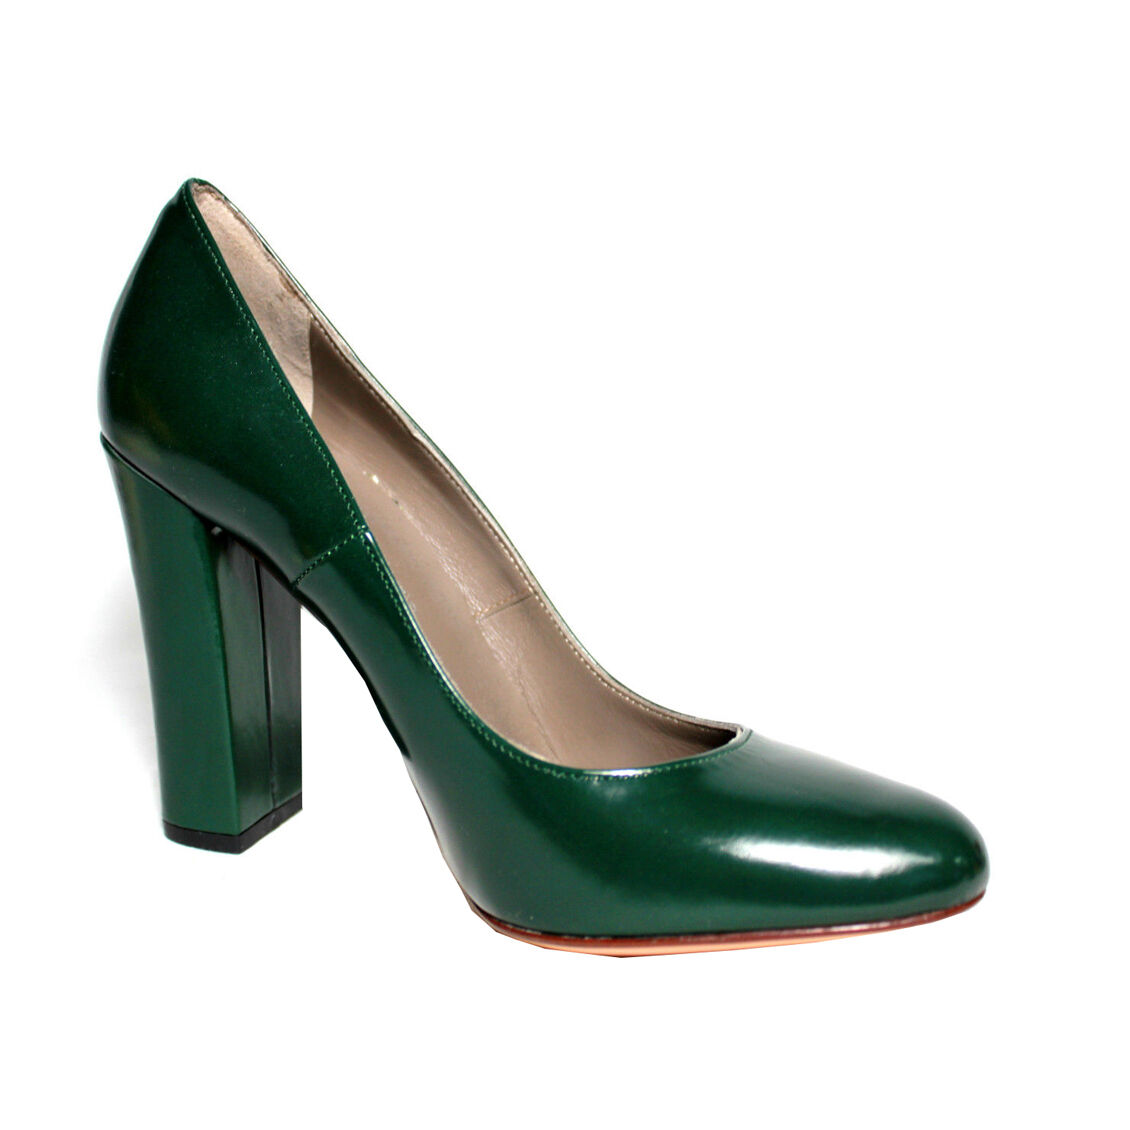 UPPER 100% CLASS  scarpa donna verde tacco cm 10 100% UPPER pelle MADE IN ITALY fb0627